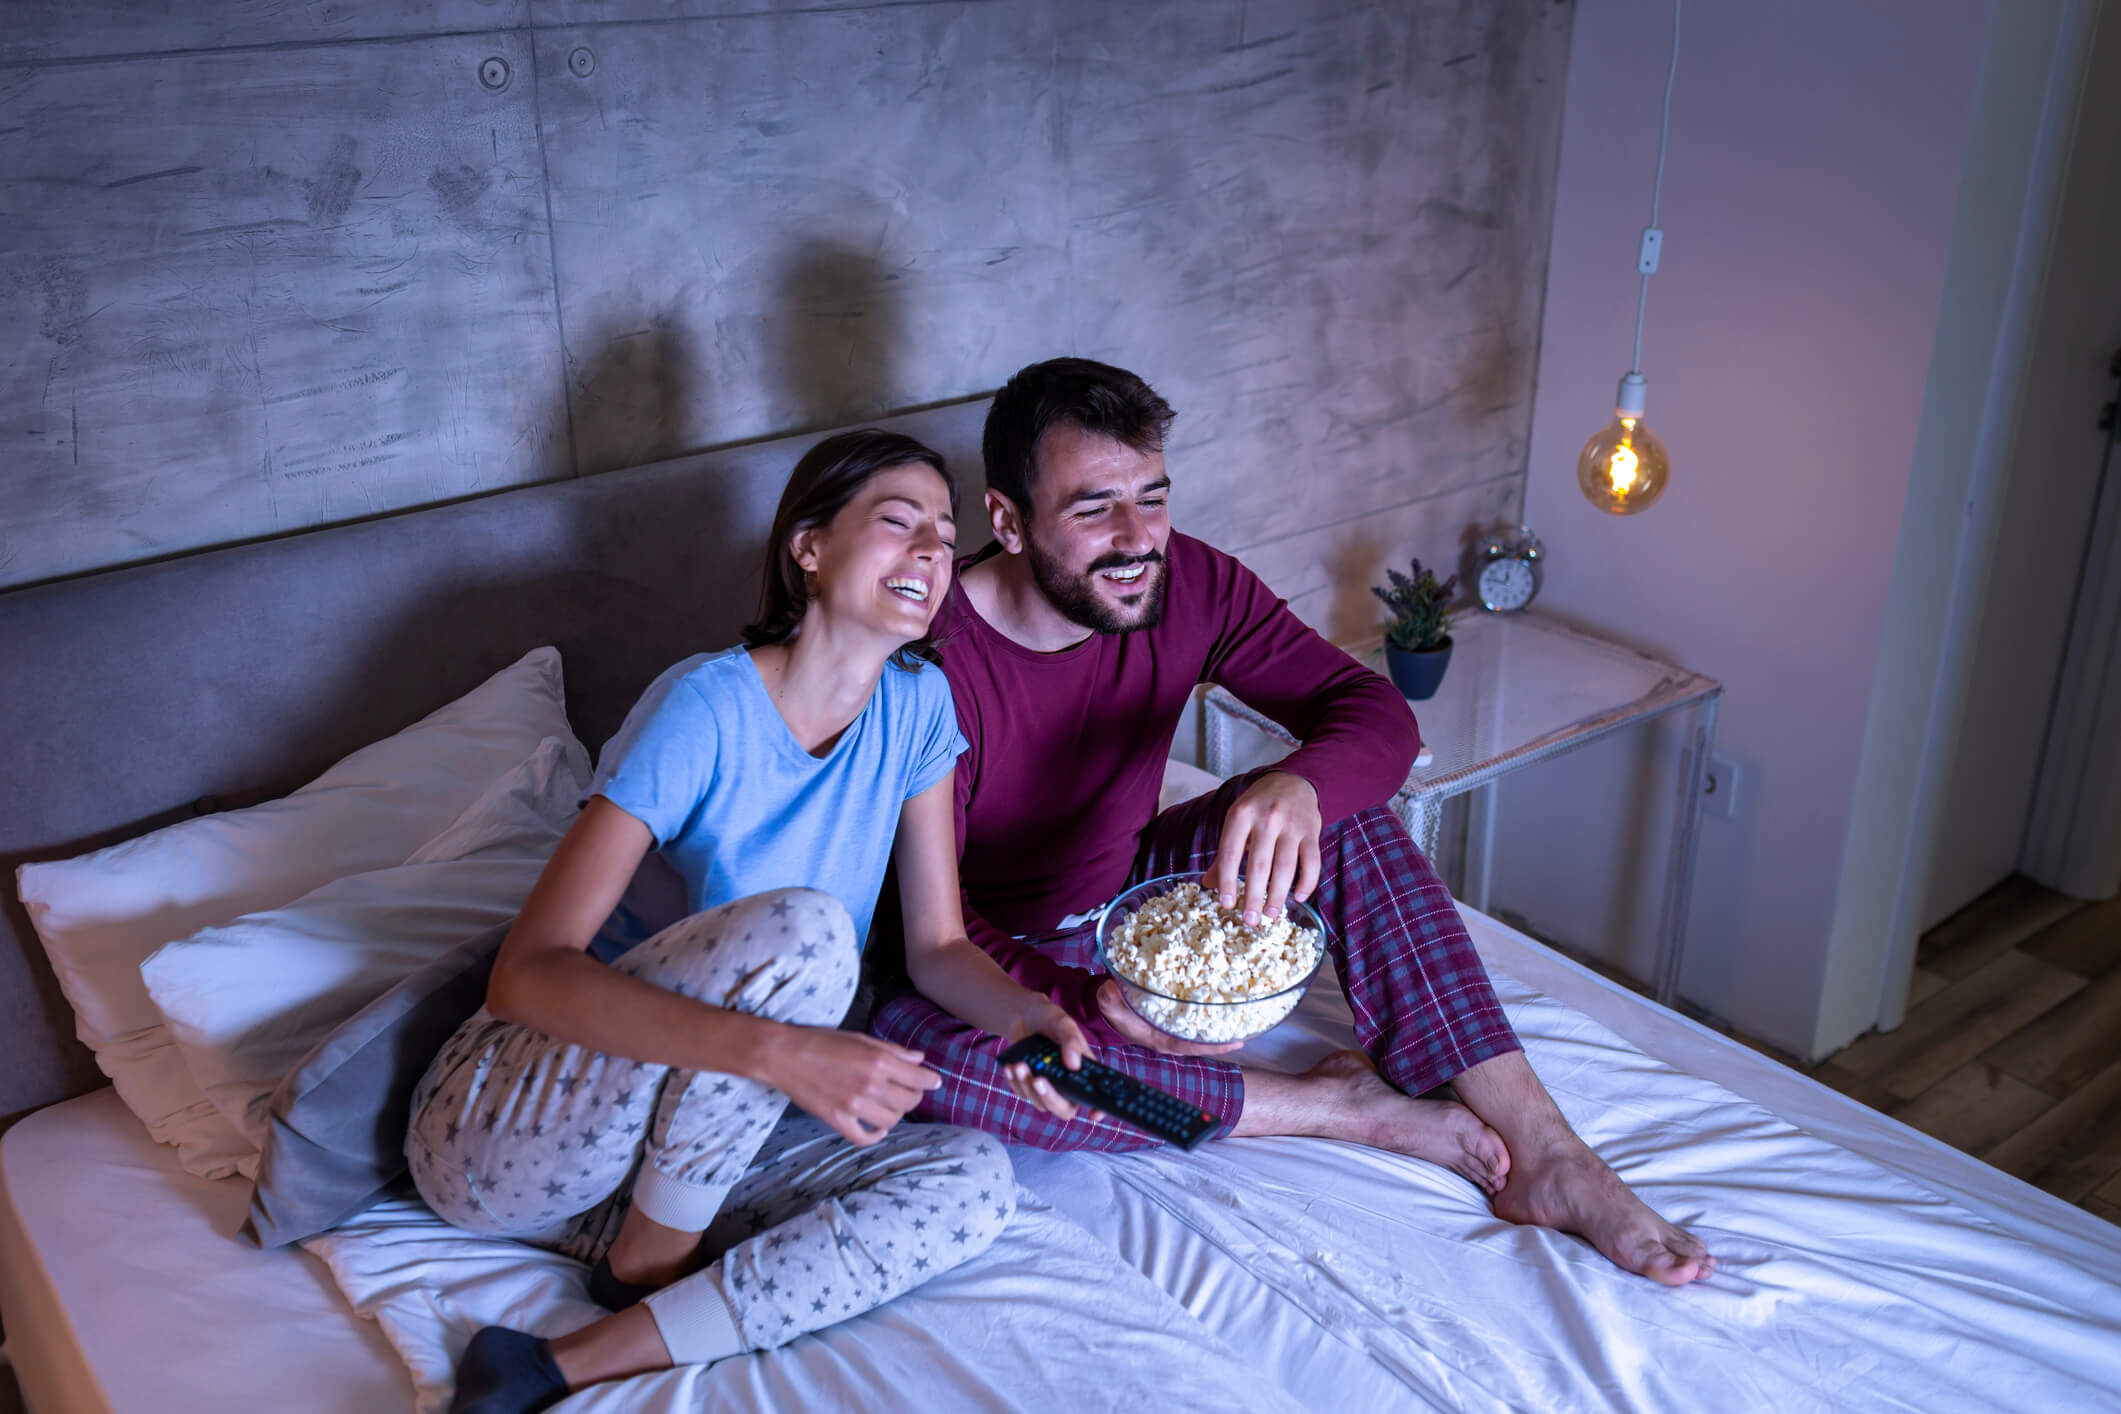 Couple watching streaming service on bed while snacking on popcorn